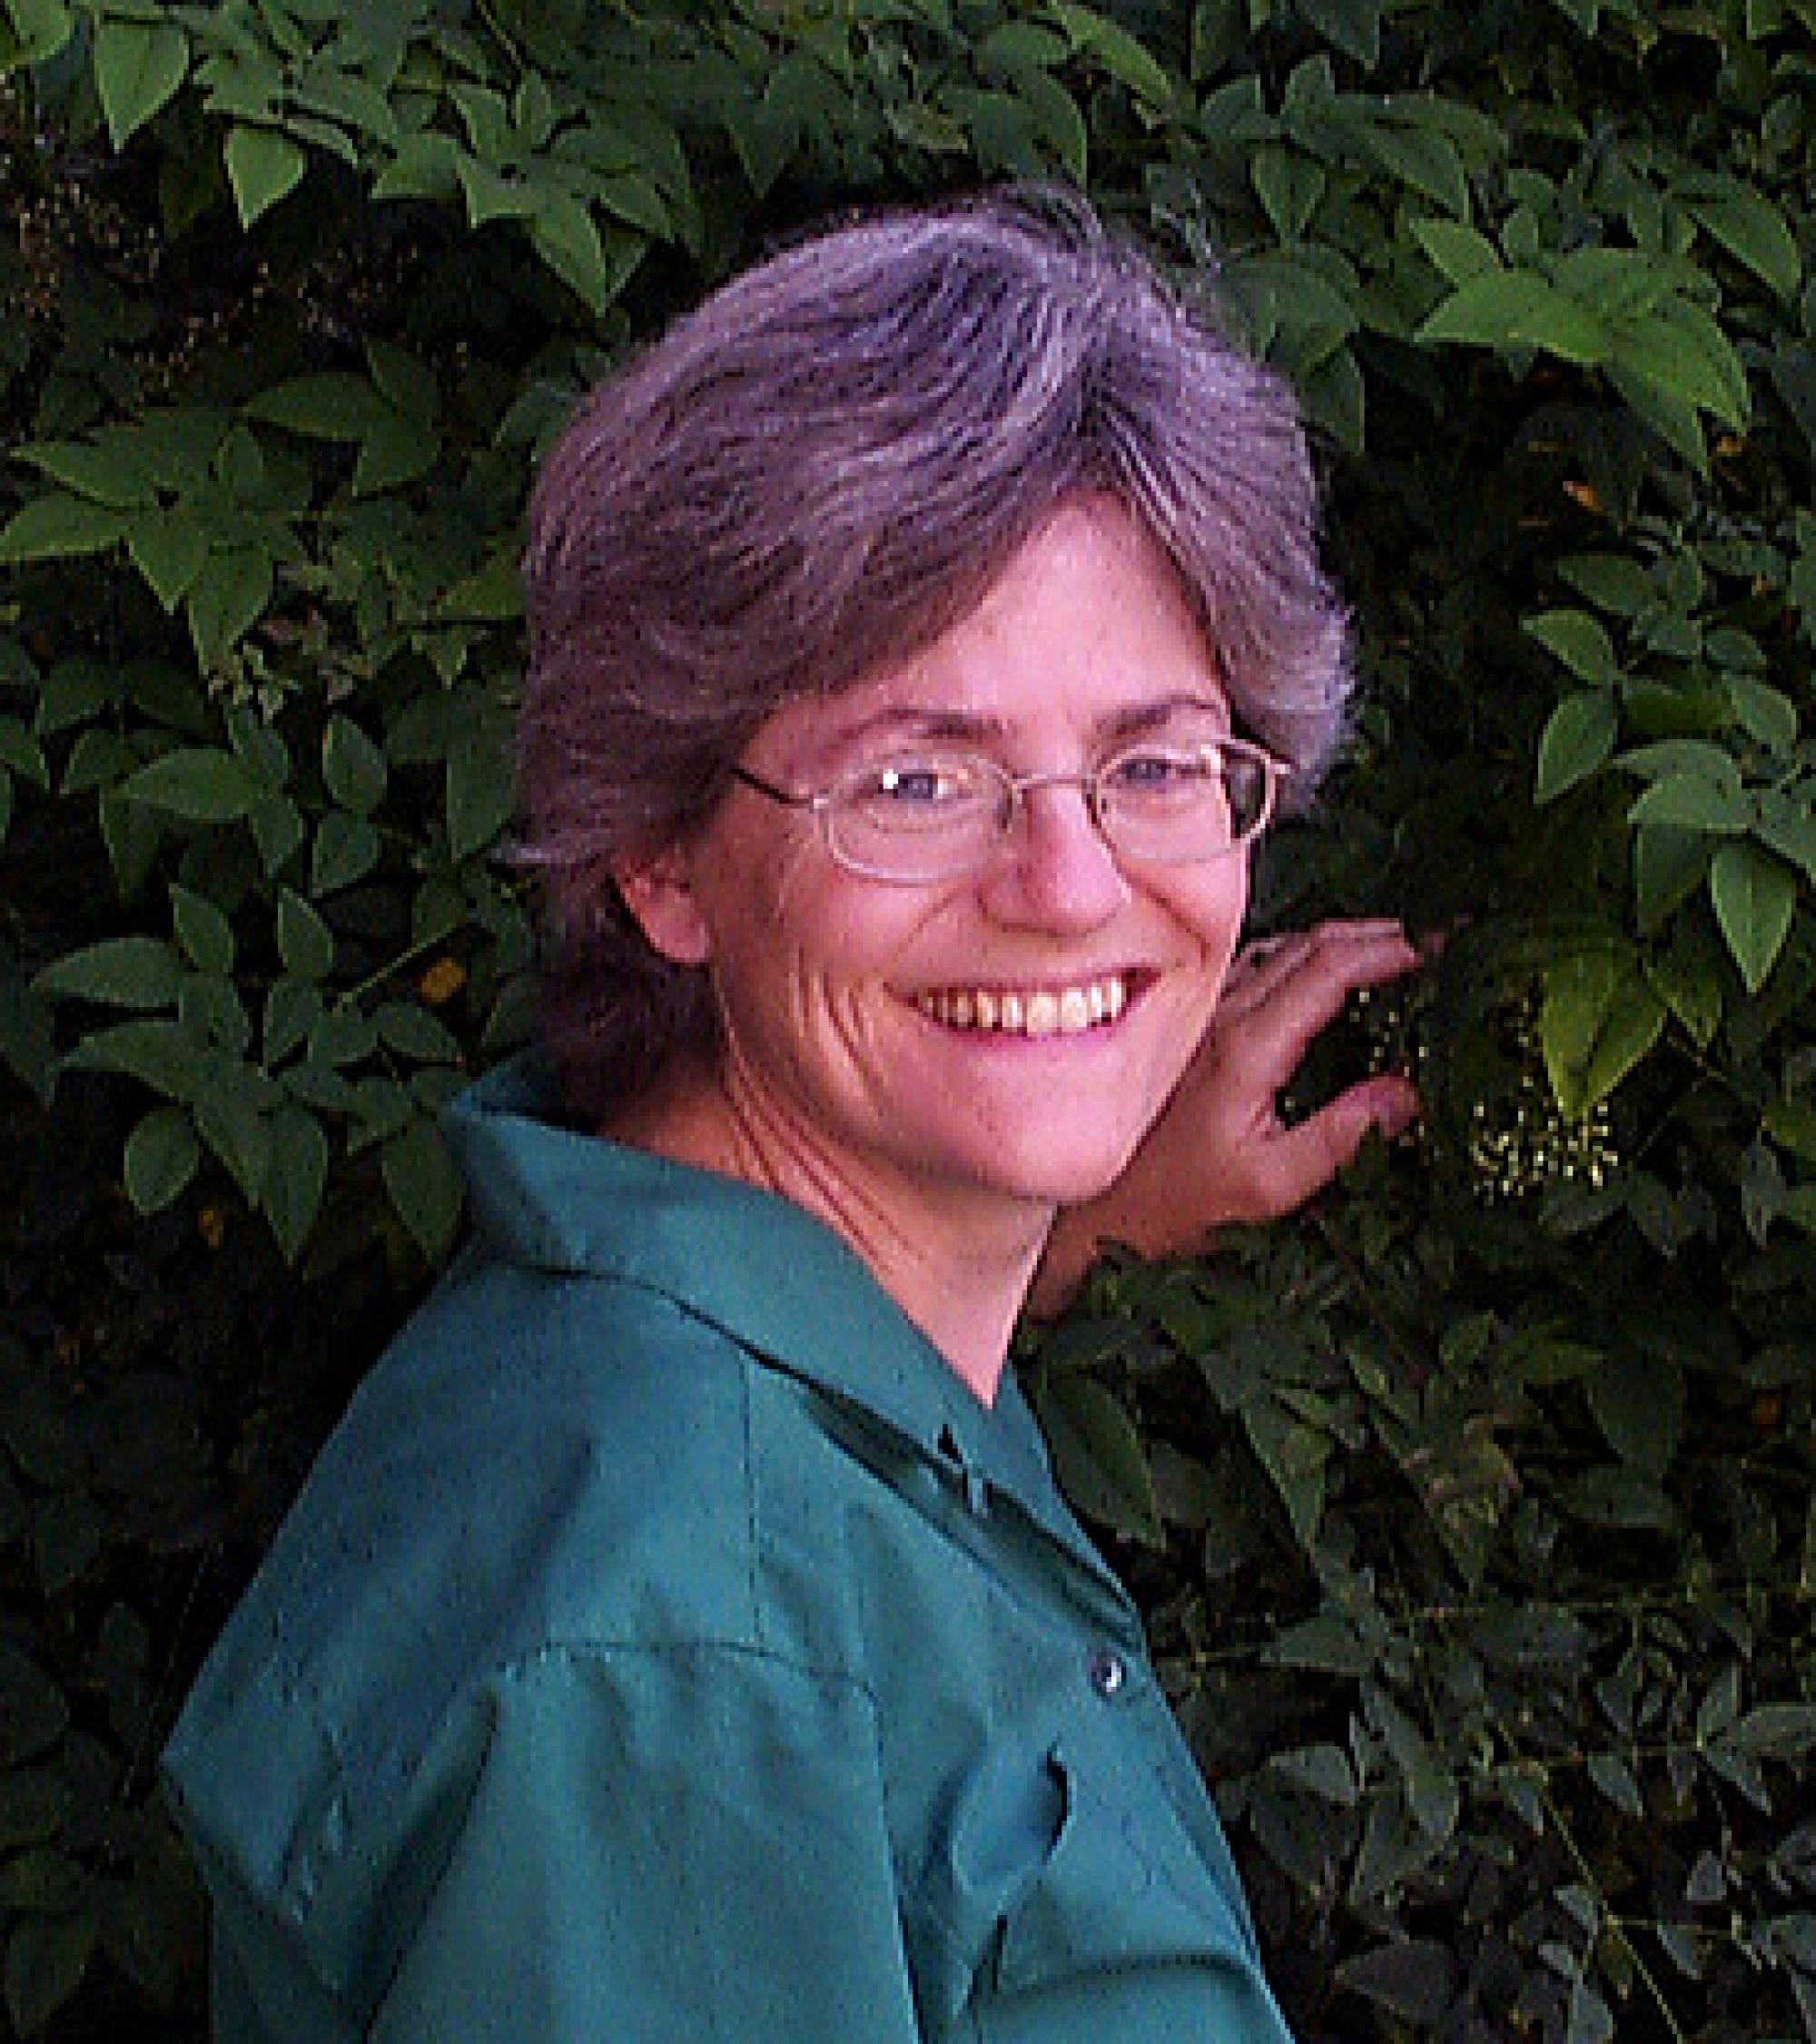 All about cooperation: ecology and evolutionary biology professor Judith Bronstein